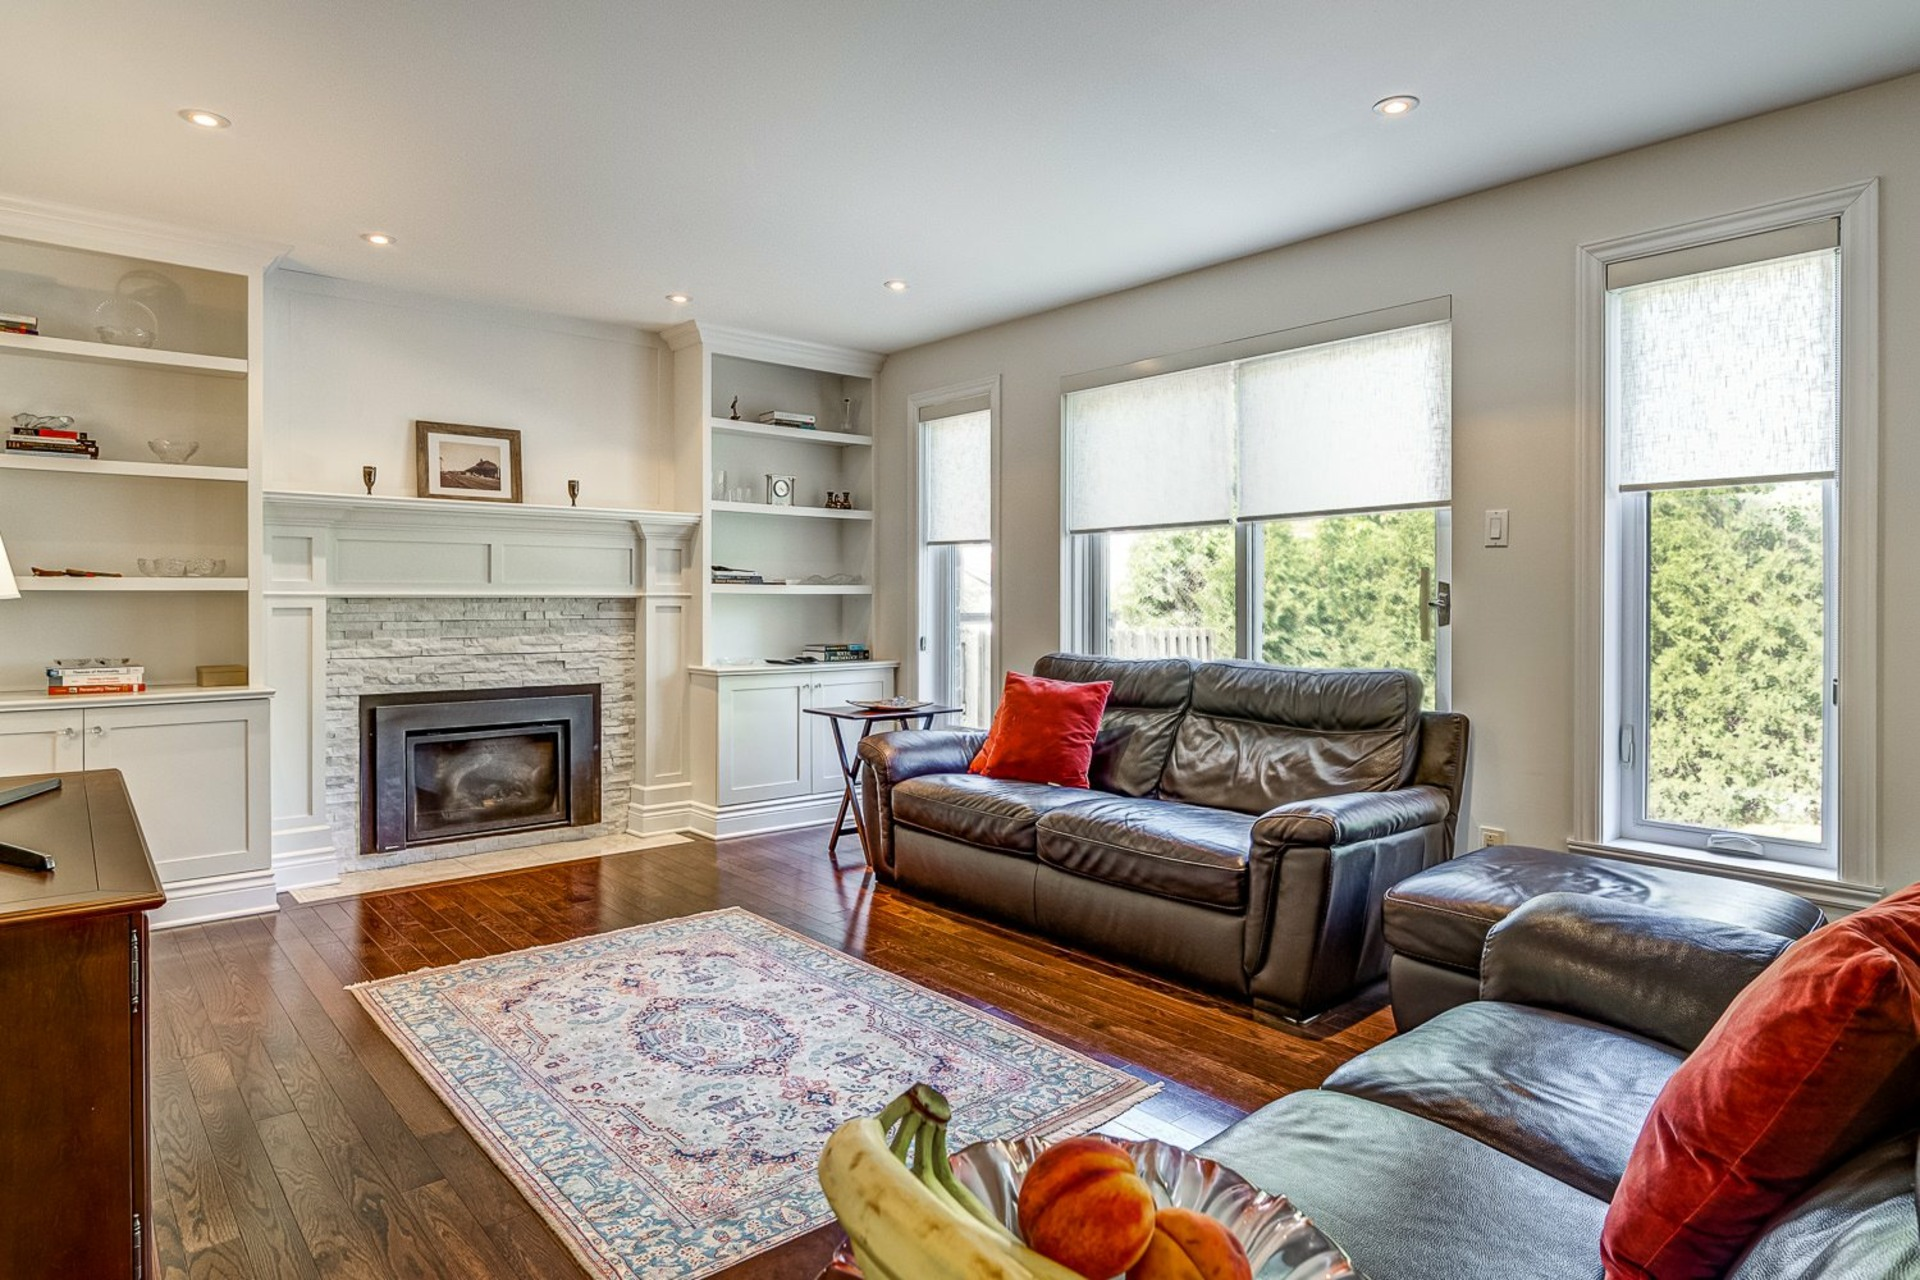 image 11 - House For sale Beaconsfield - 11 rooms